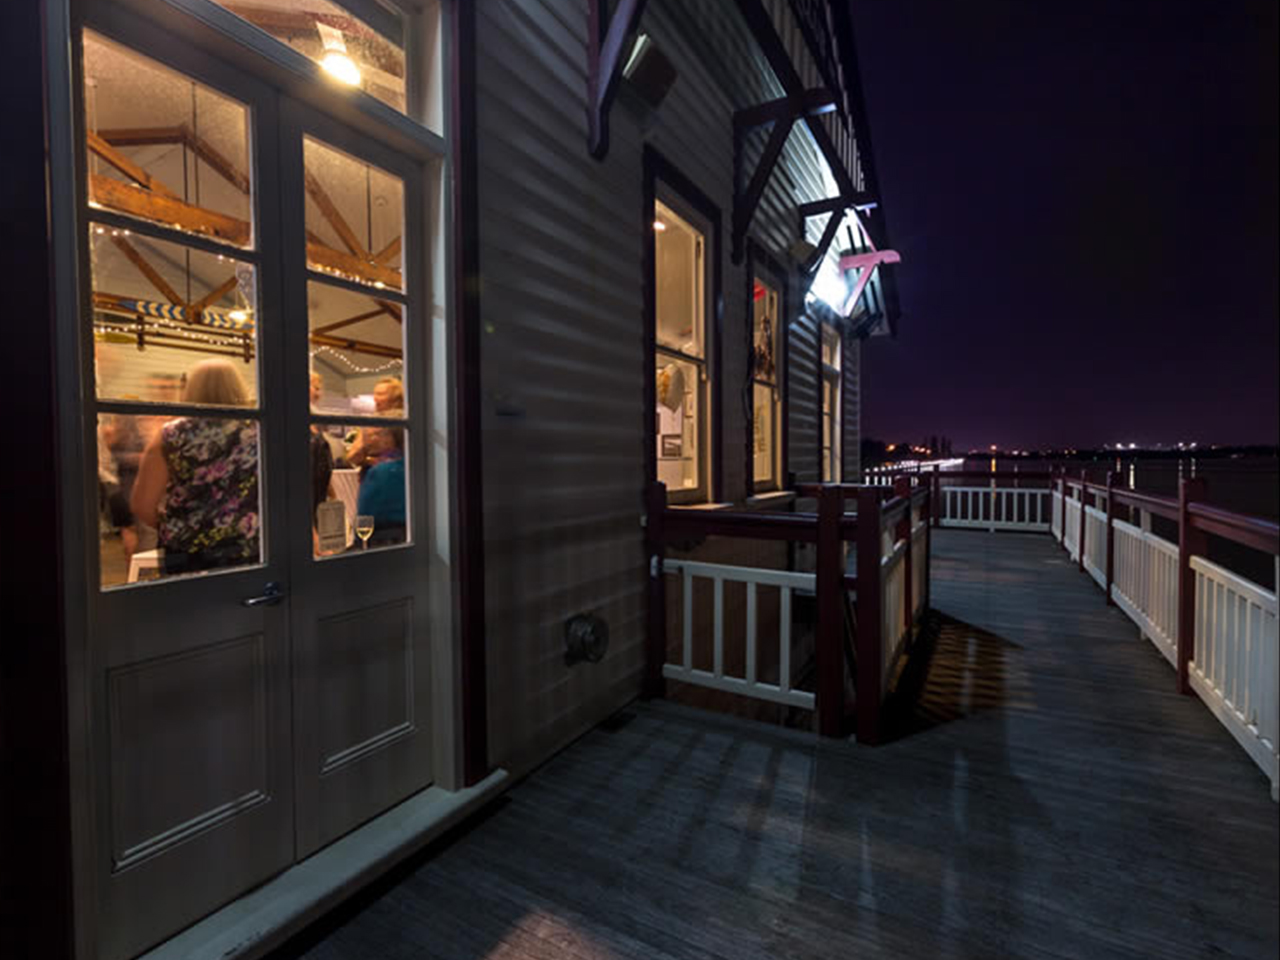 Outside Of The Function Room With Ocean View